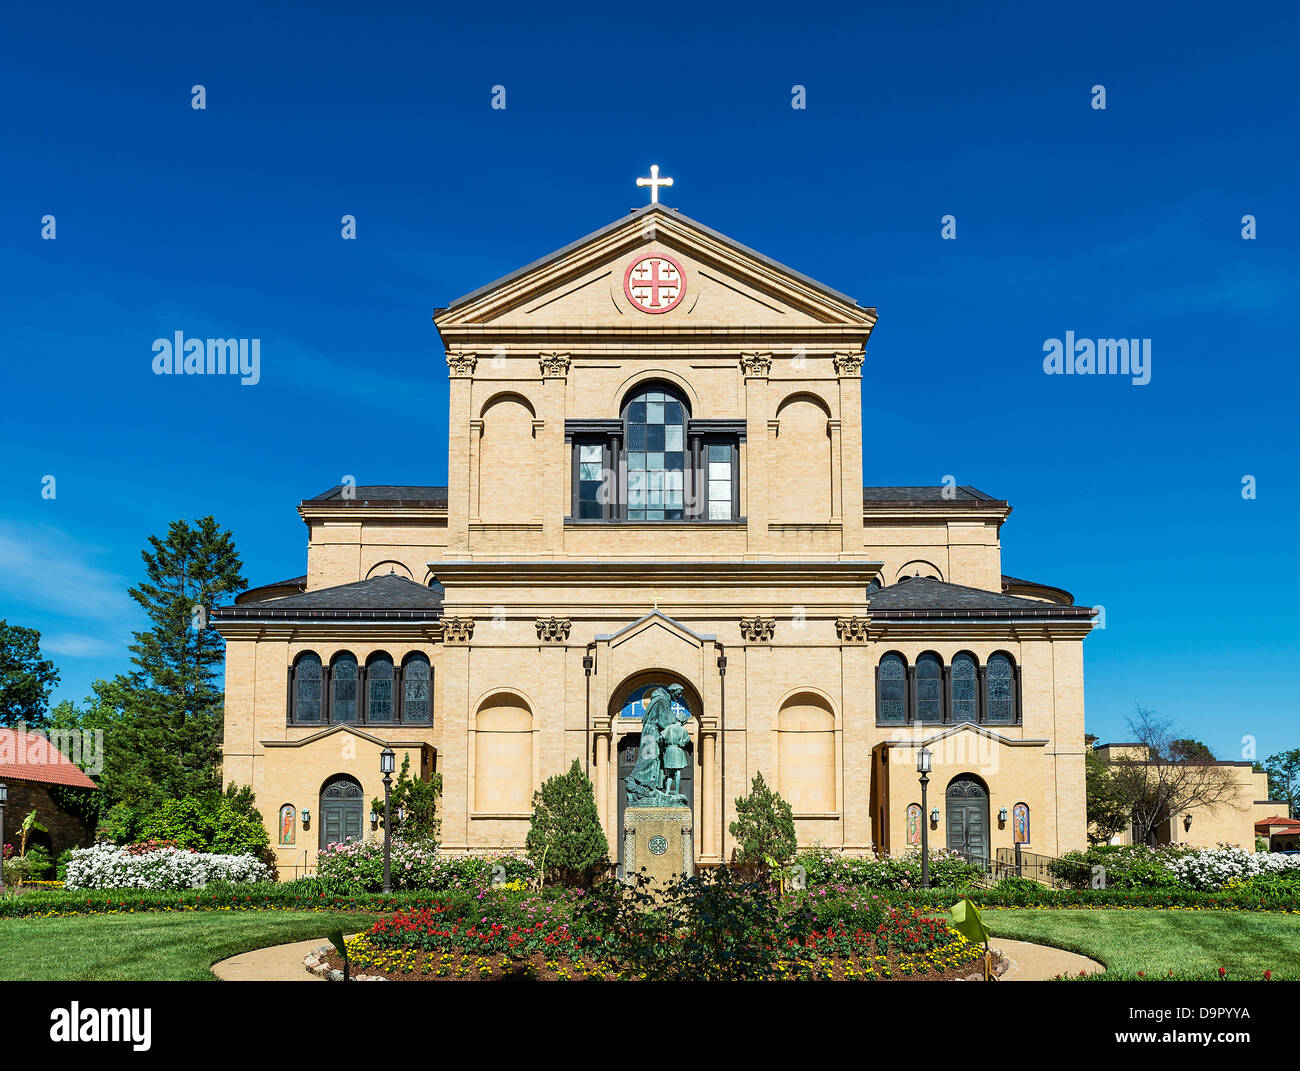 Exterior, The Memorial Church of the Holy Sepulchre, Franciscan Monastery of the Holy Land in America, Washington - Stock Image